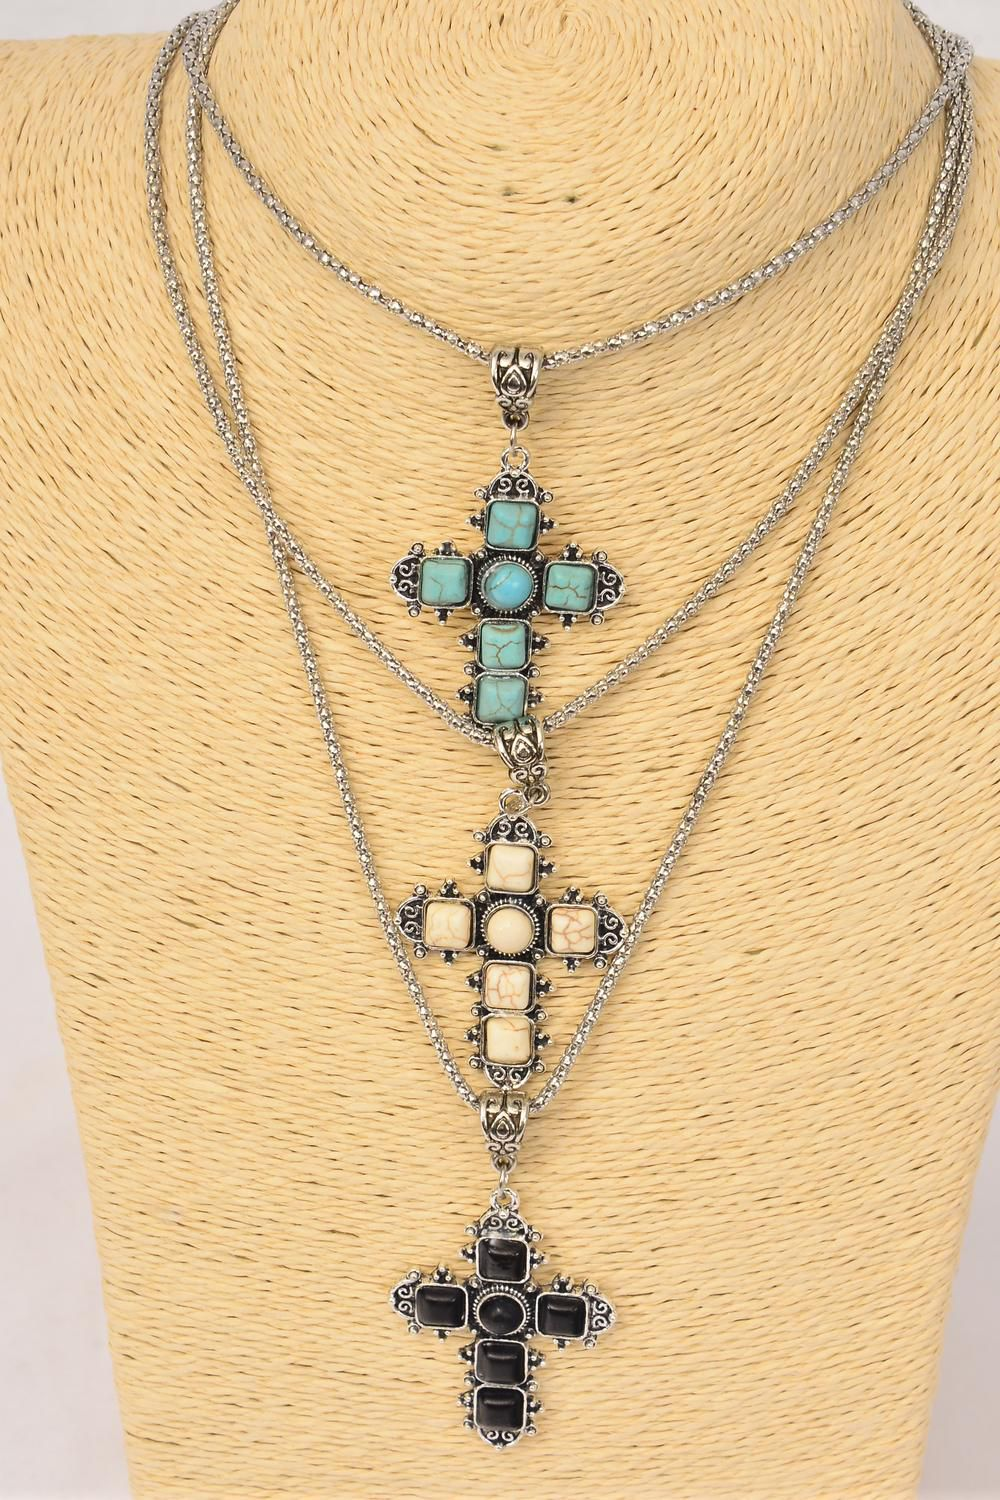 "Necklace Silver Chain Metal Cross Antique Round Semiprecious Stone/DZ Pendant-1.75"" x 1.25"" Wide,Chain-18"" Extension Chain,4 Ivory,4 Black,4 Turquoise Asst,Hang Tag & OPP Bag & UPC Code"